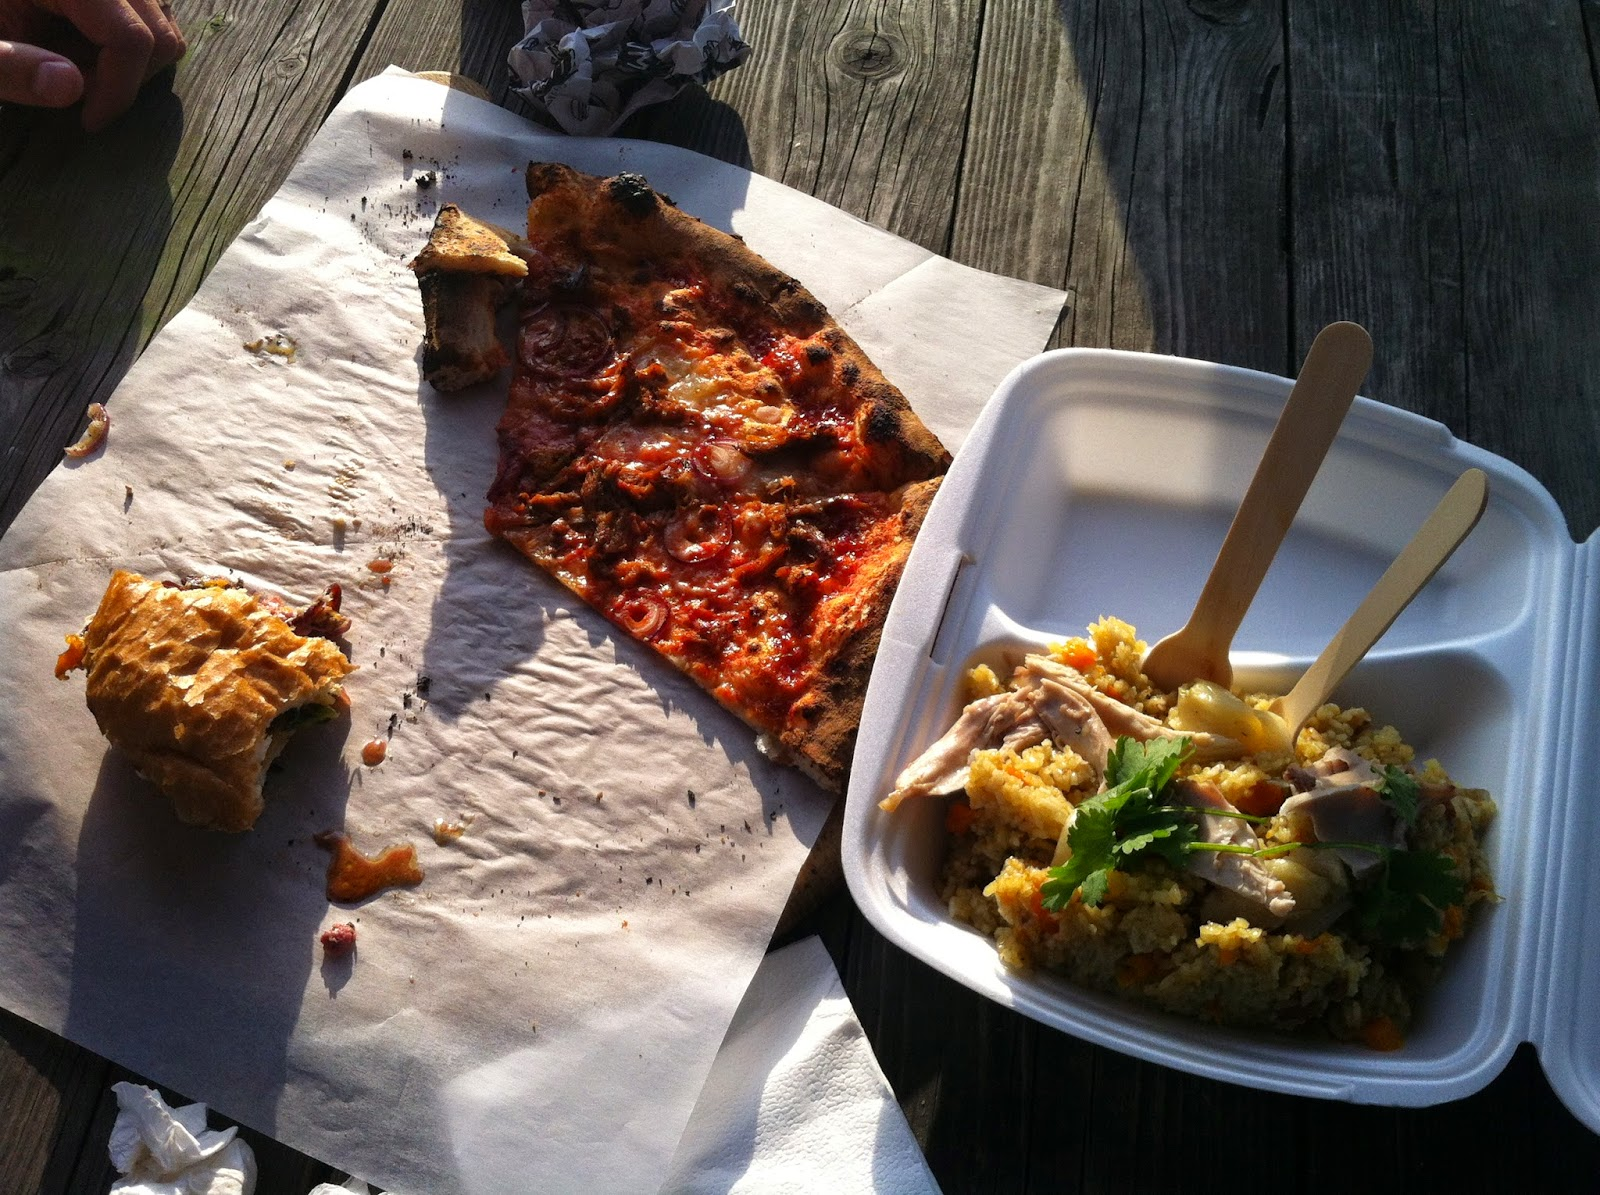 Pizza, burger, and Uzbekistan rice from Open Kitchen in Vilnius.